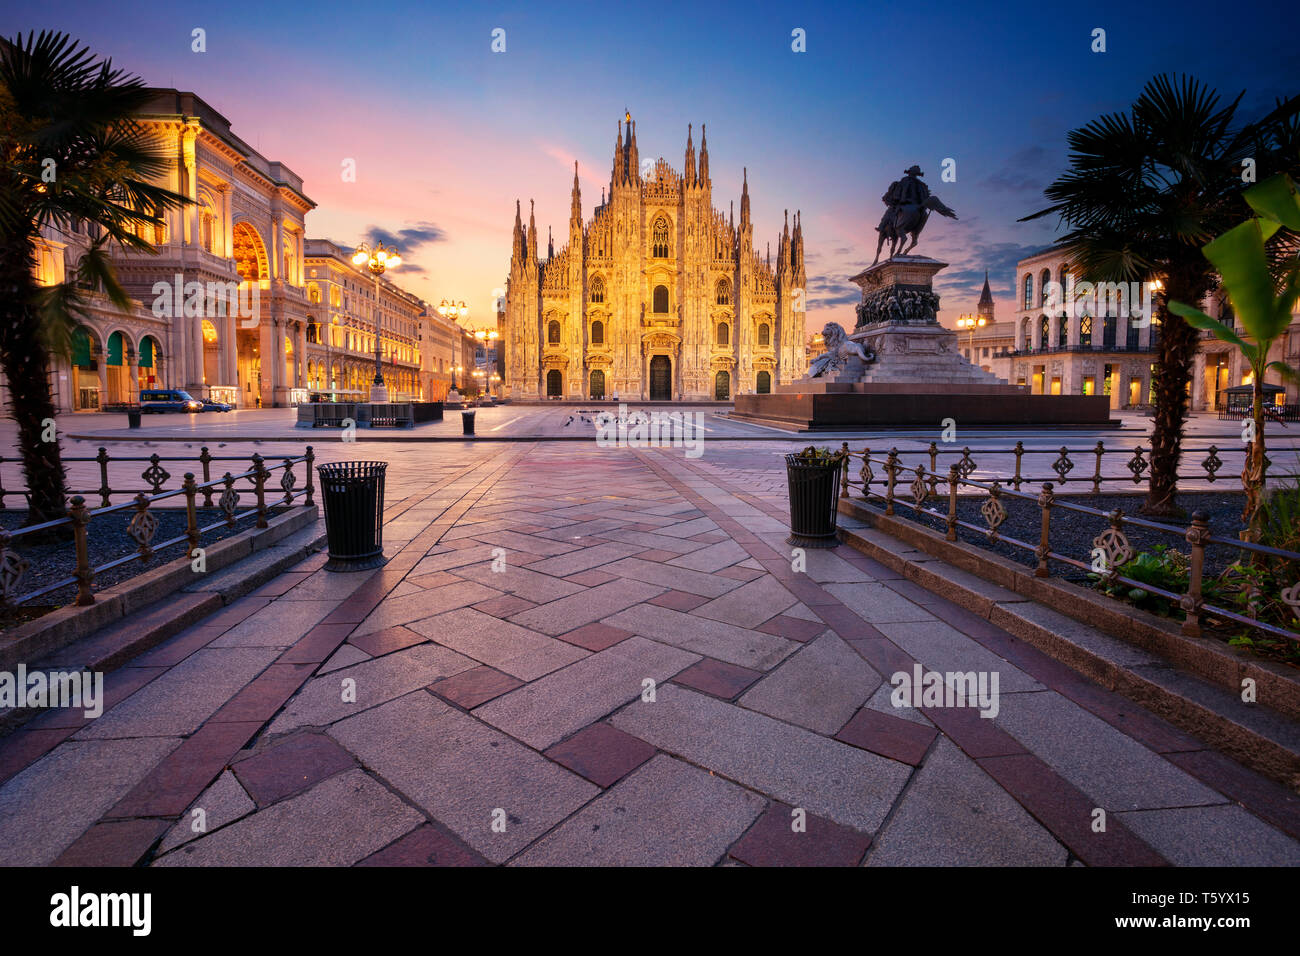 Milan, Italy. Cityscape image of Milan, Italy with Milan Cathedral during sunrise. Stock Photo